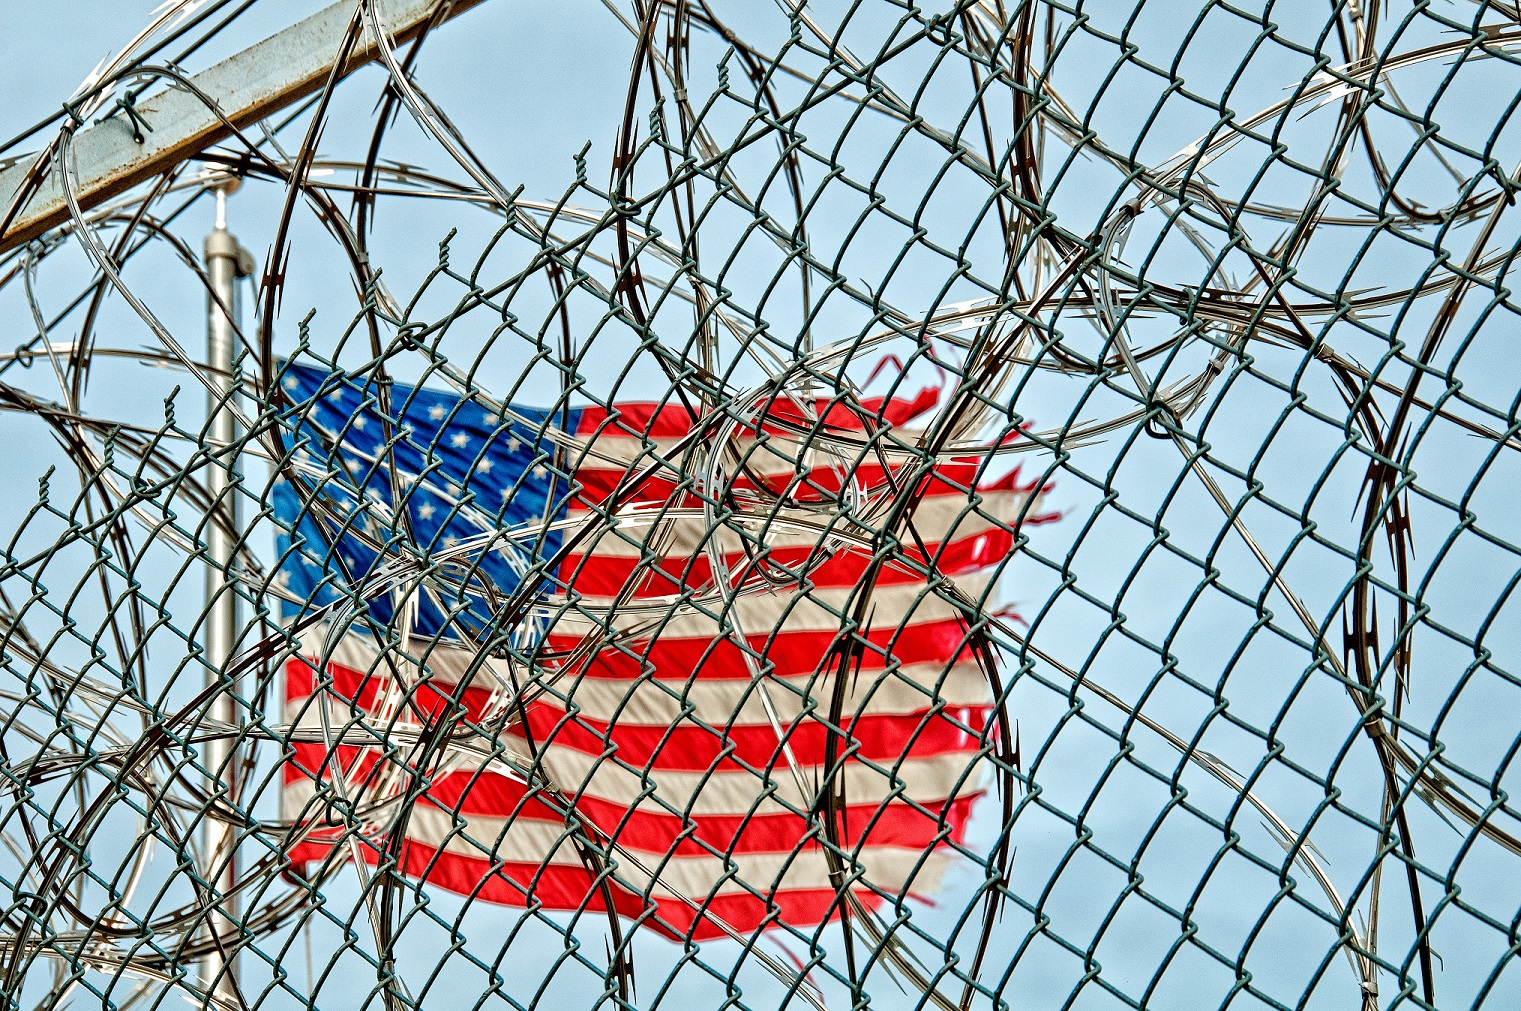 american-flag-barbed-wire-fence-54456